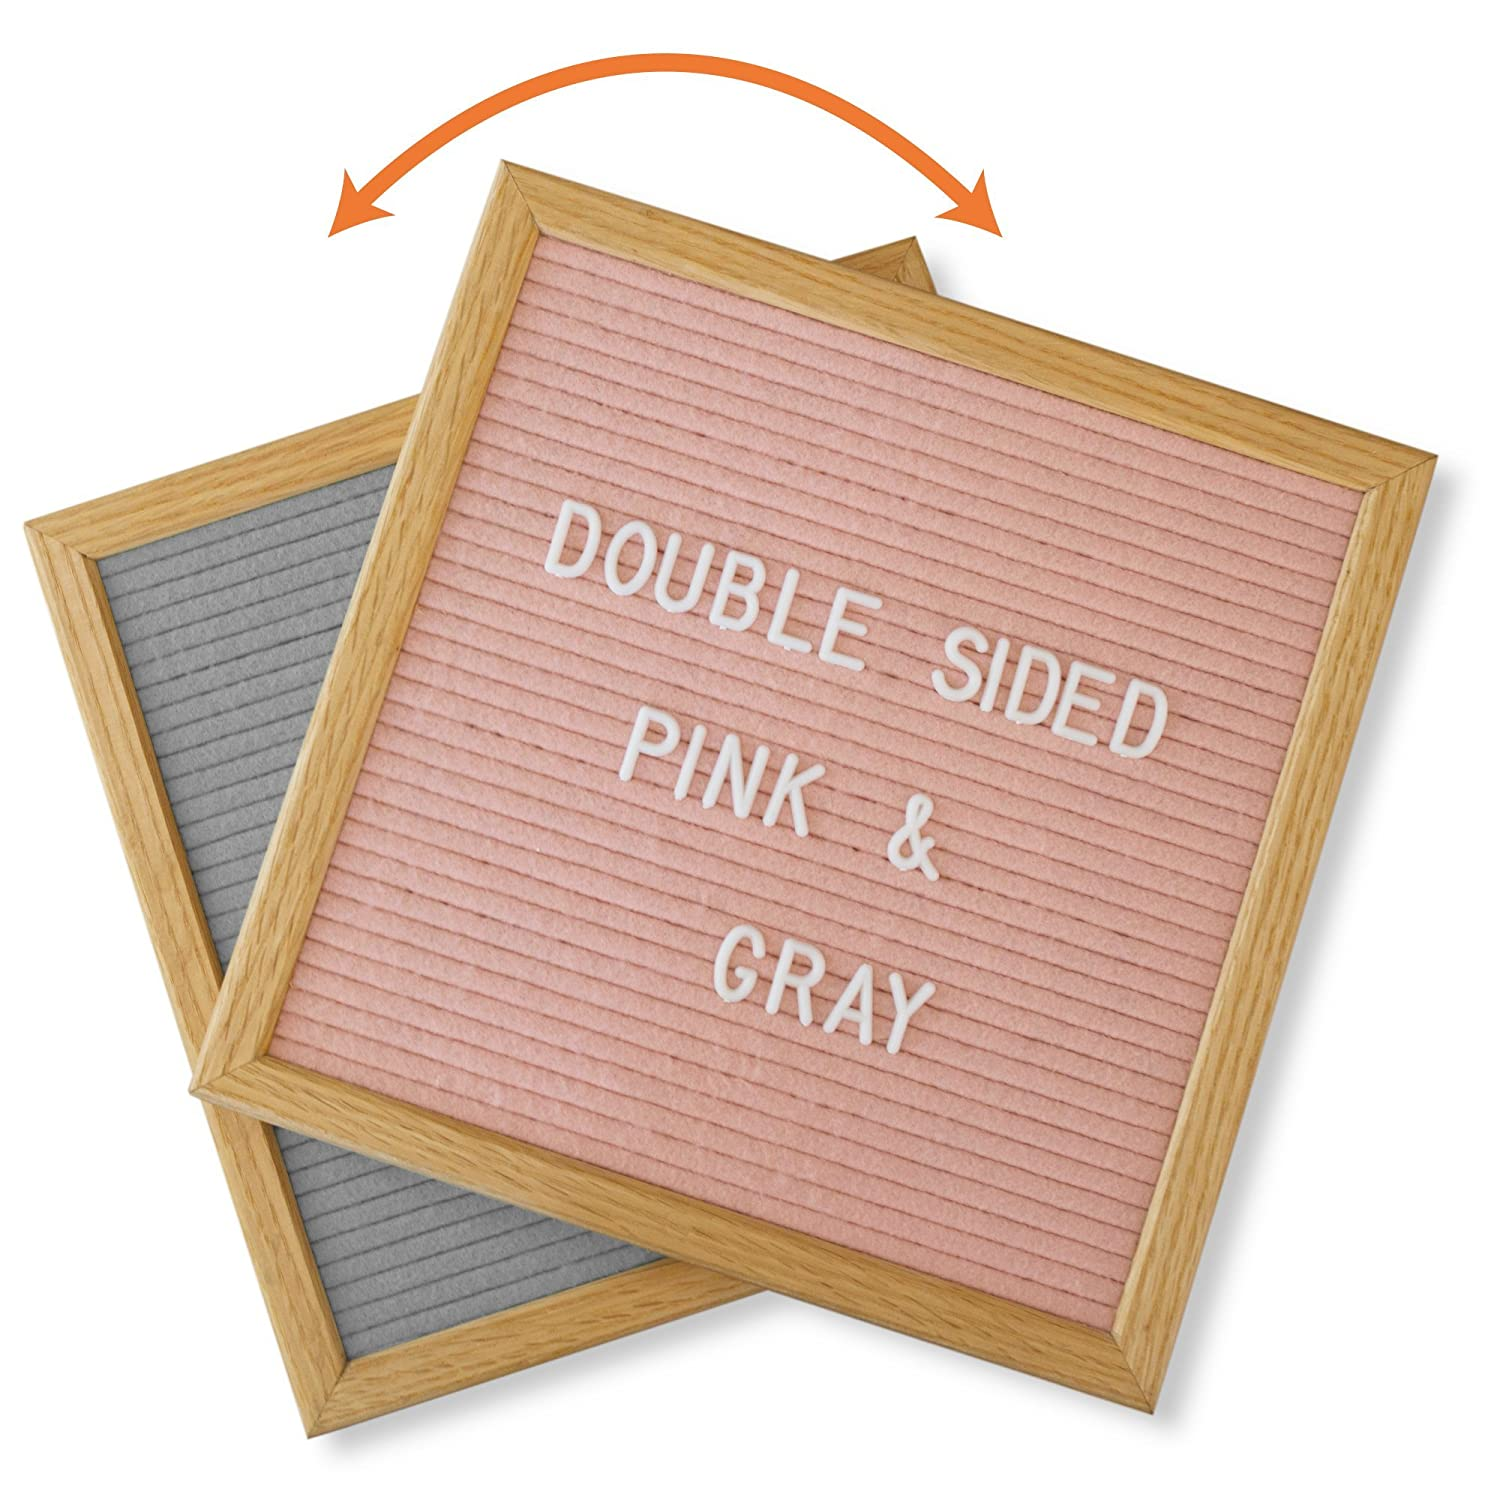 Amazon.com : Pink Felt Letter Board Gray Double Sided with Stand and ...